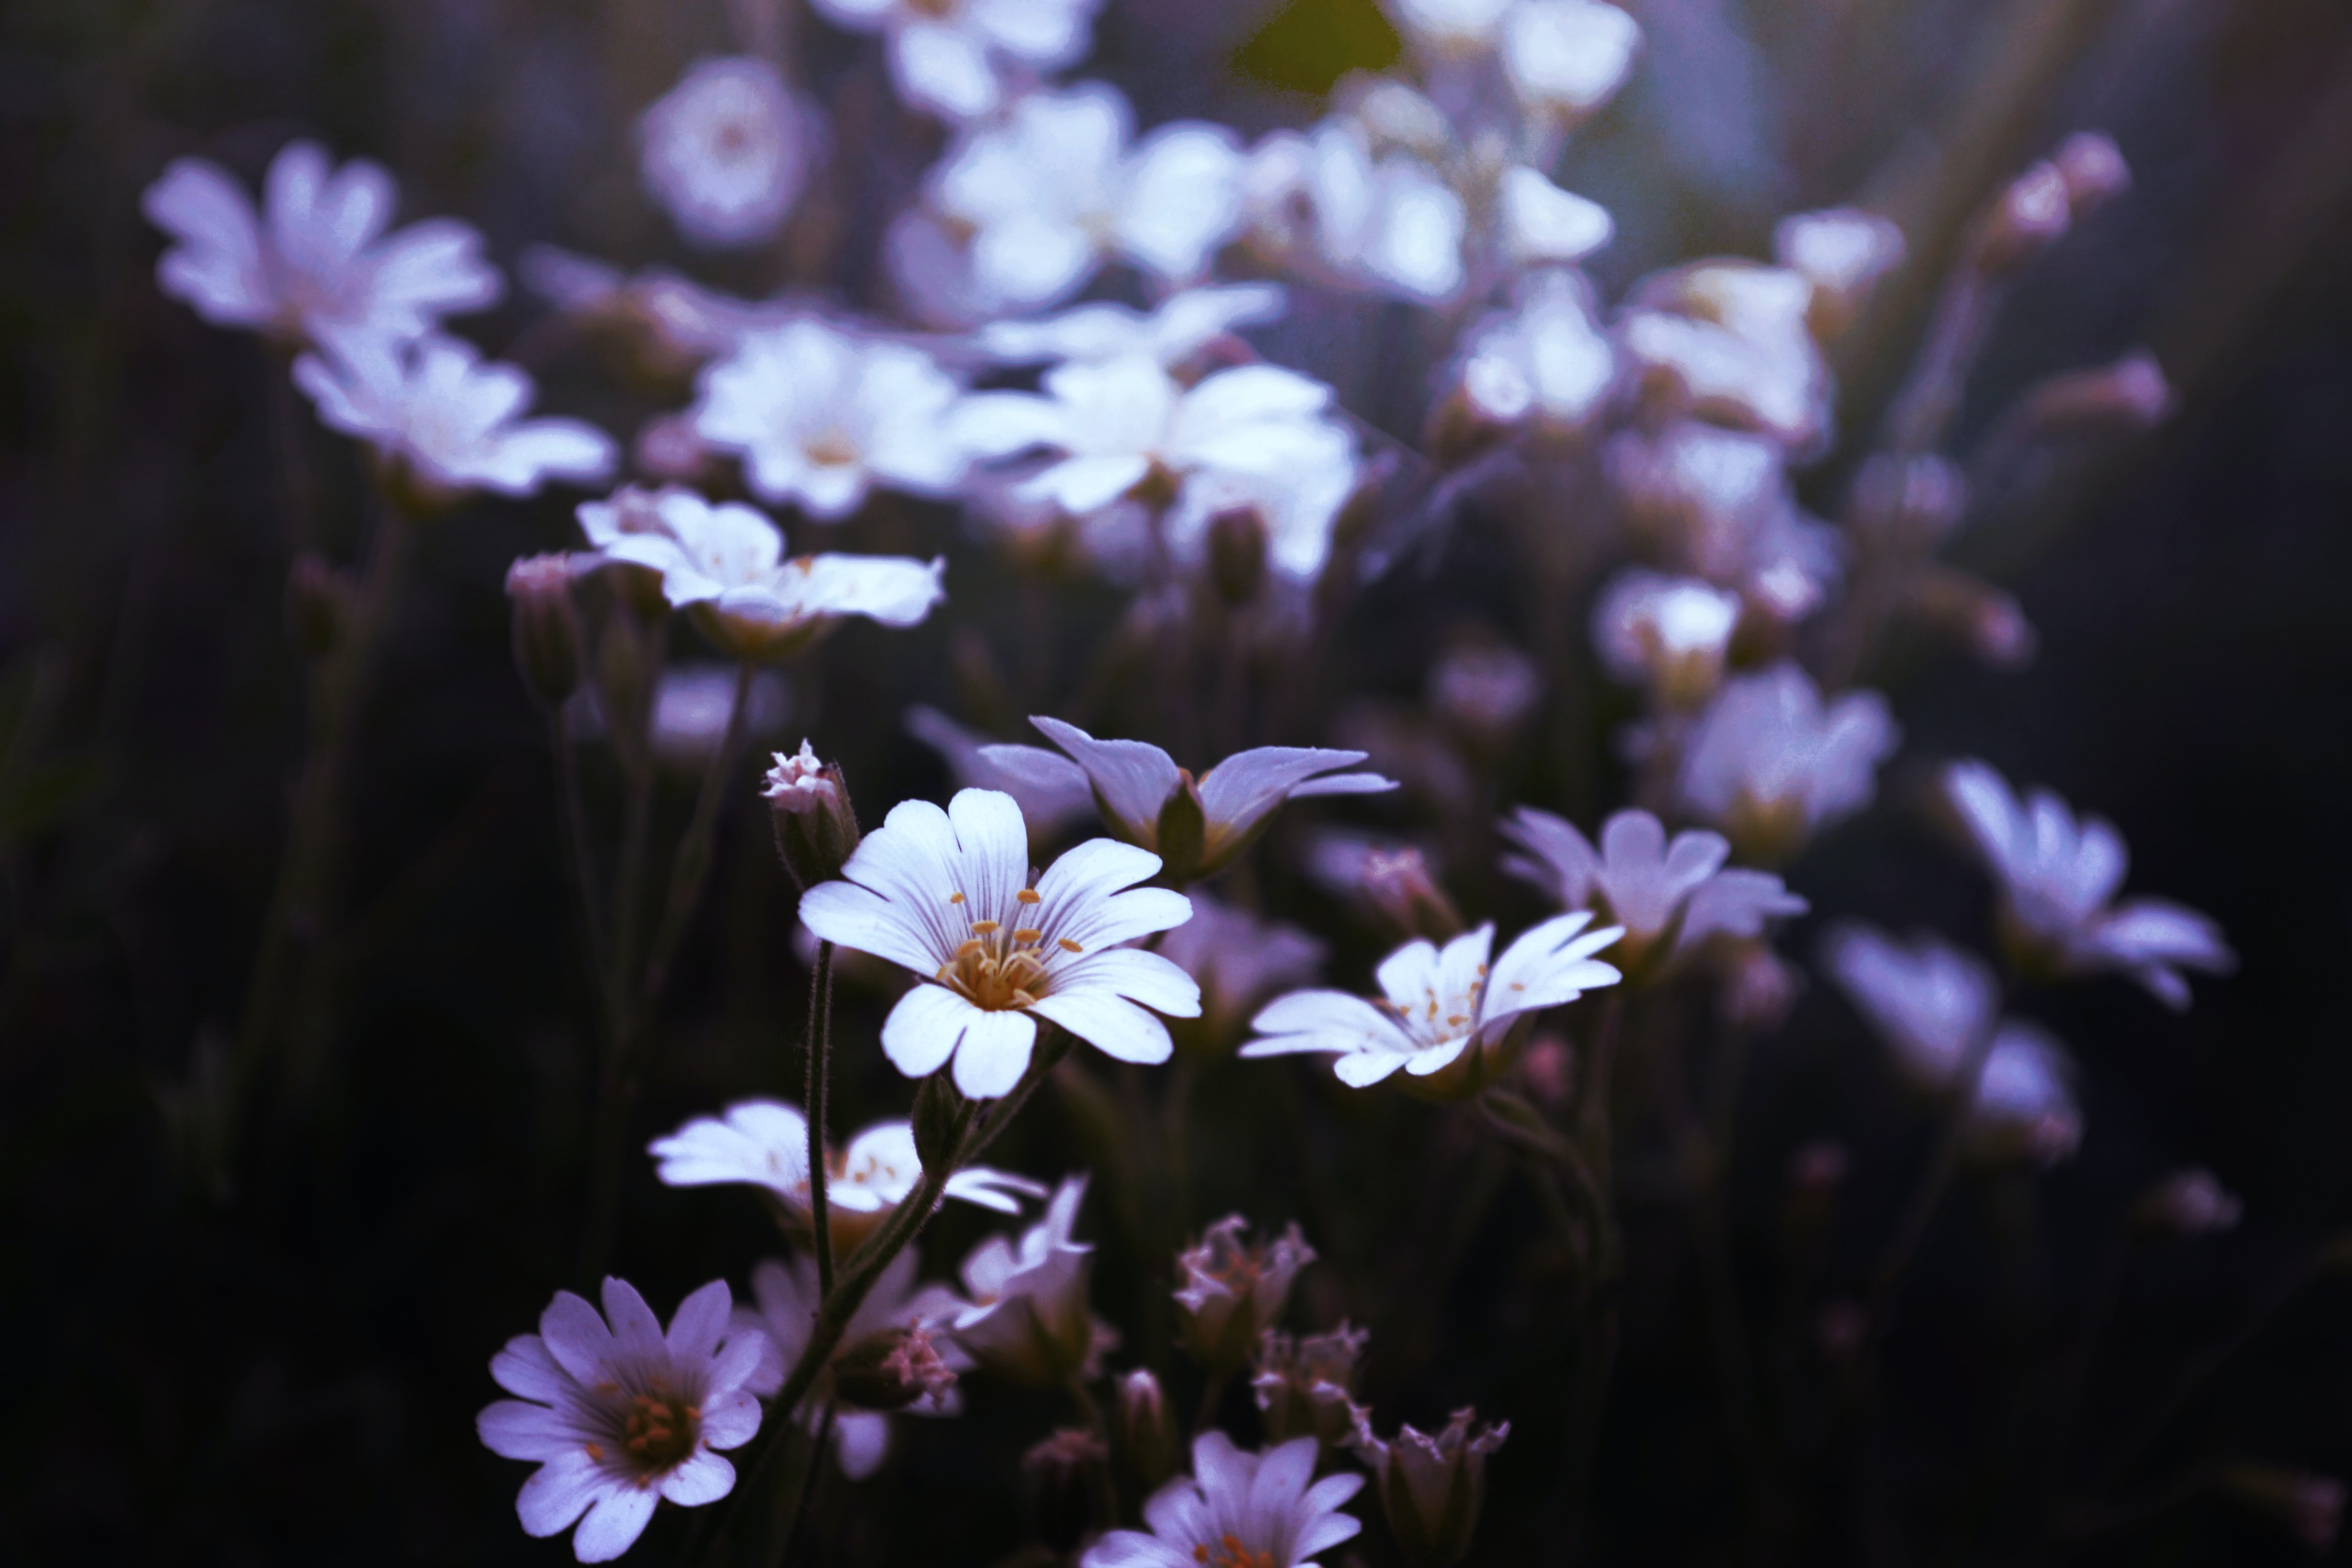 A dim shot of small white flowers in bloom